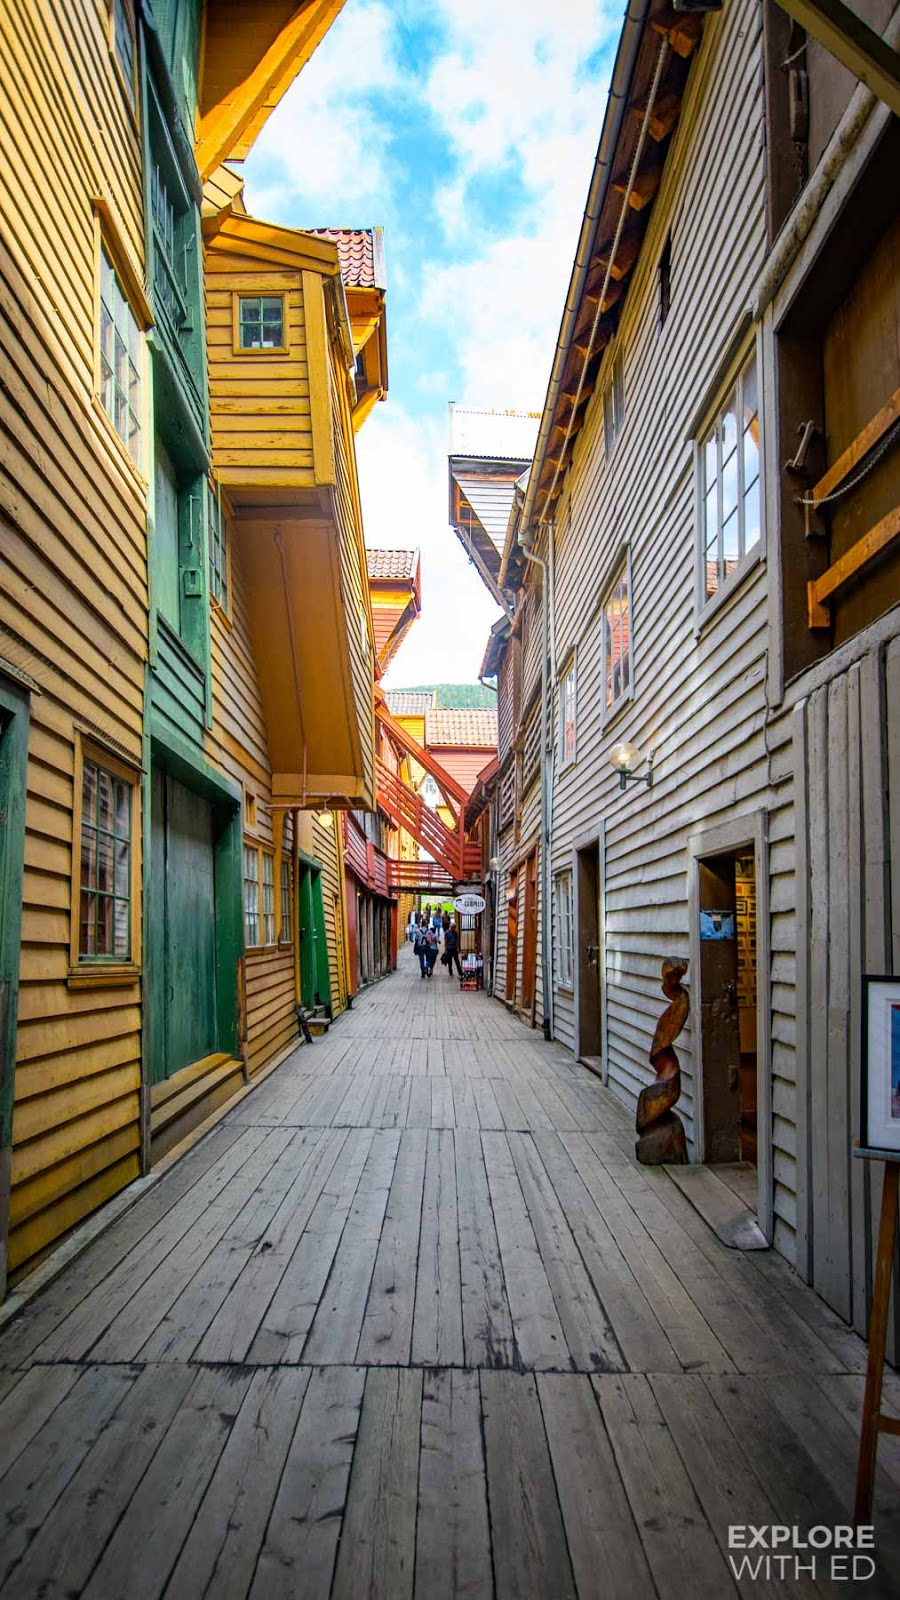 The colourful wooden alleys of The Bryggen, Bergen in Norway